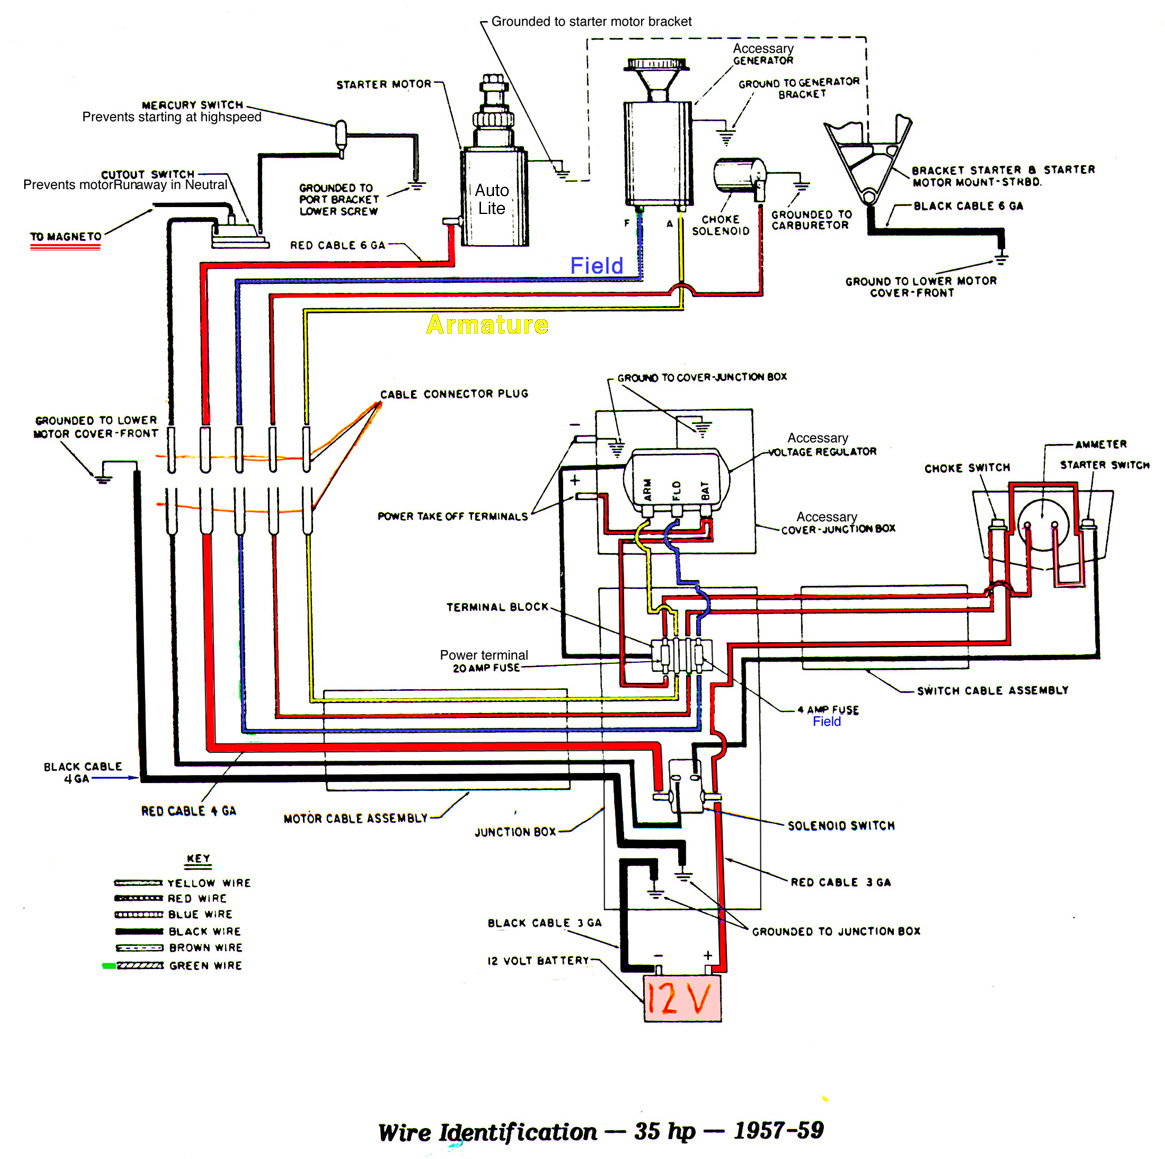 57_35HPGen 1958 johnson super seahorse 35 wiring harness aomci blue board wiring diagram johnson 50 hp outboard at gsmportal.co